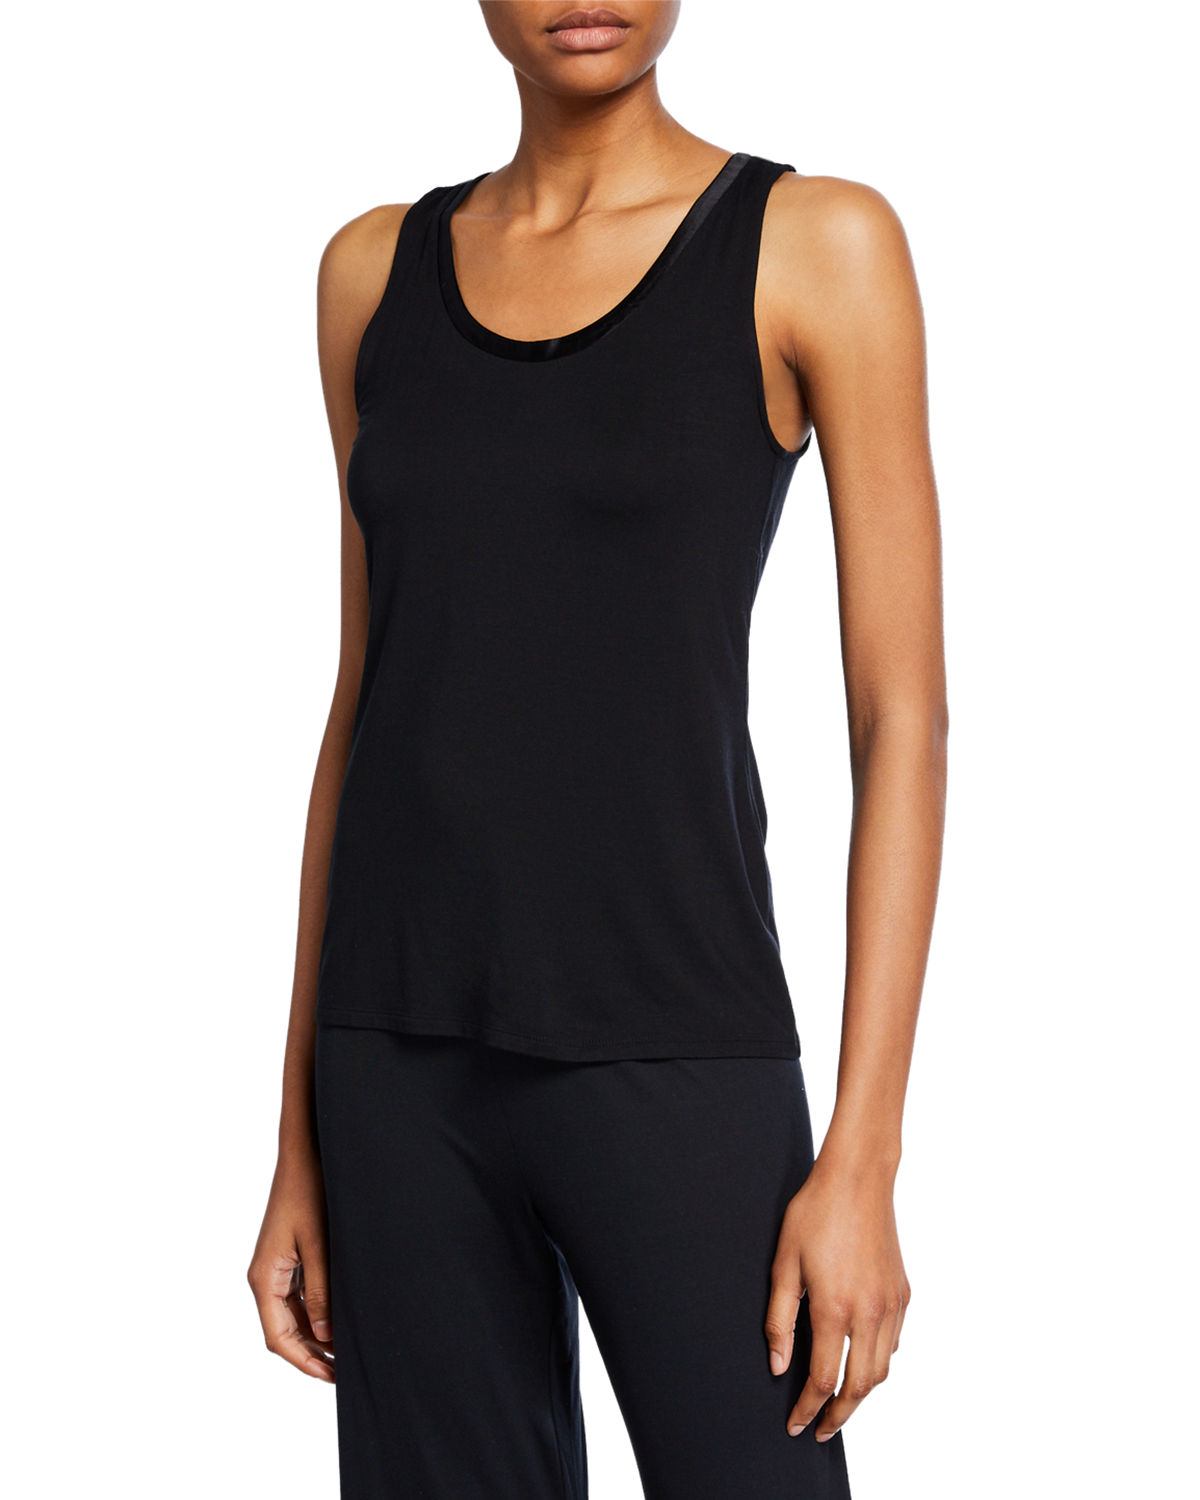 Josie Natori Tops JERSEY ESSENTIALS SCOOP-NECK TANK